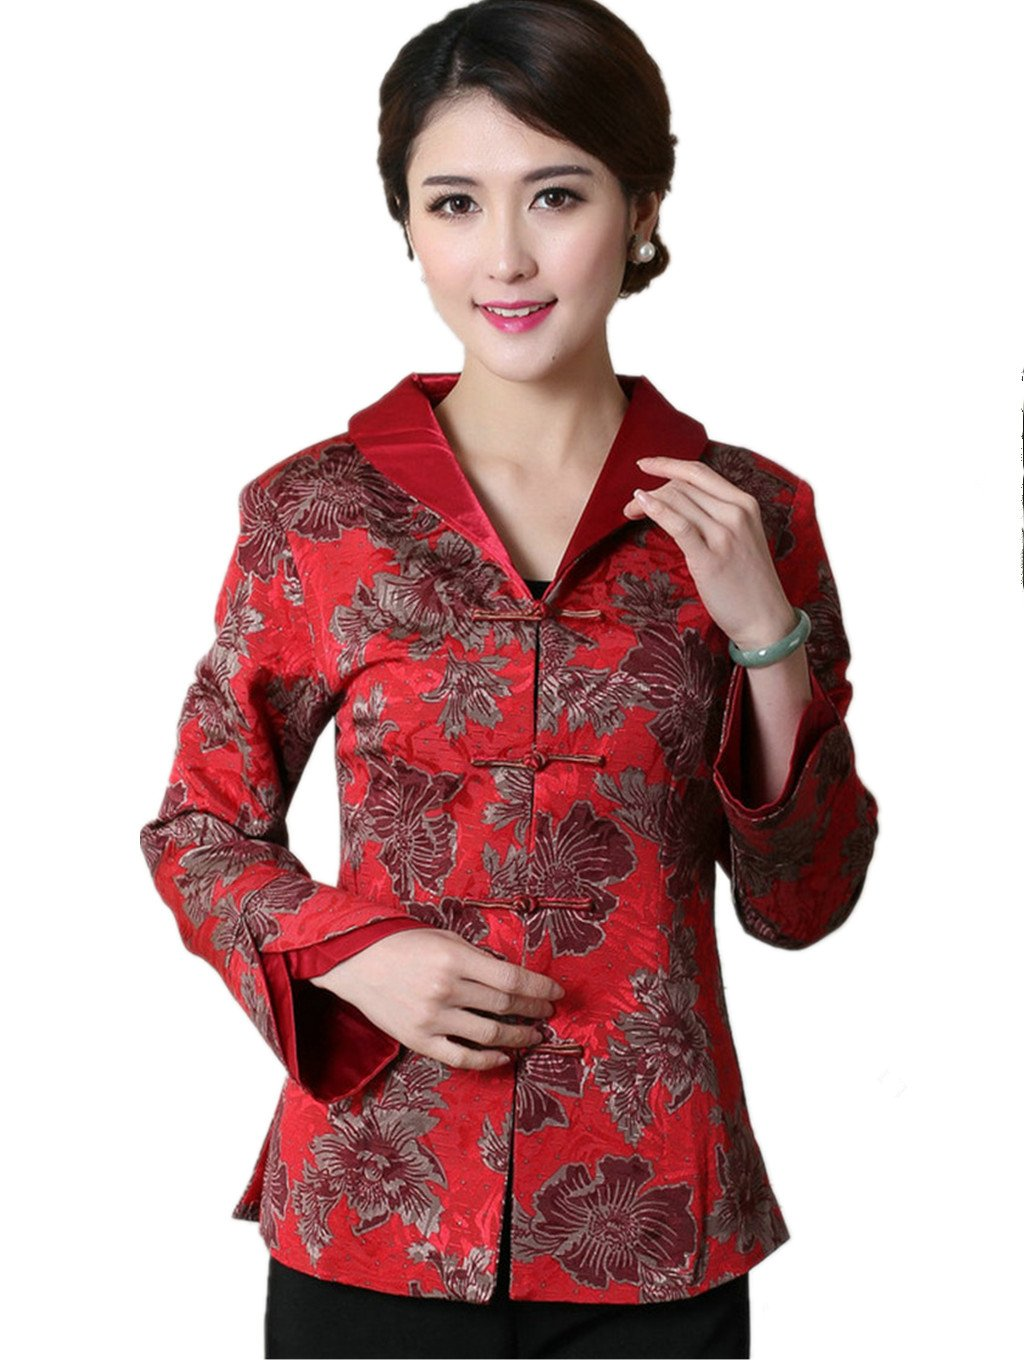 Womens Tang Suits National Costume Characteristic Dress Chinese Style Coats Retro Jackets Full Dress Formal Dress Womens Jackets Business Jackets by Womens Tang Suit